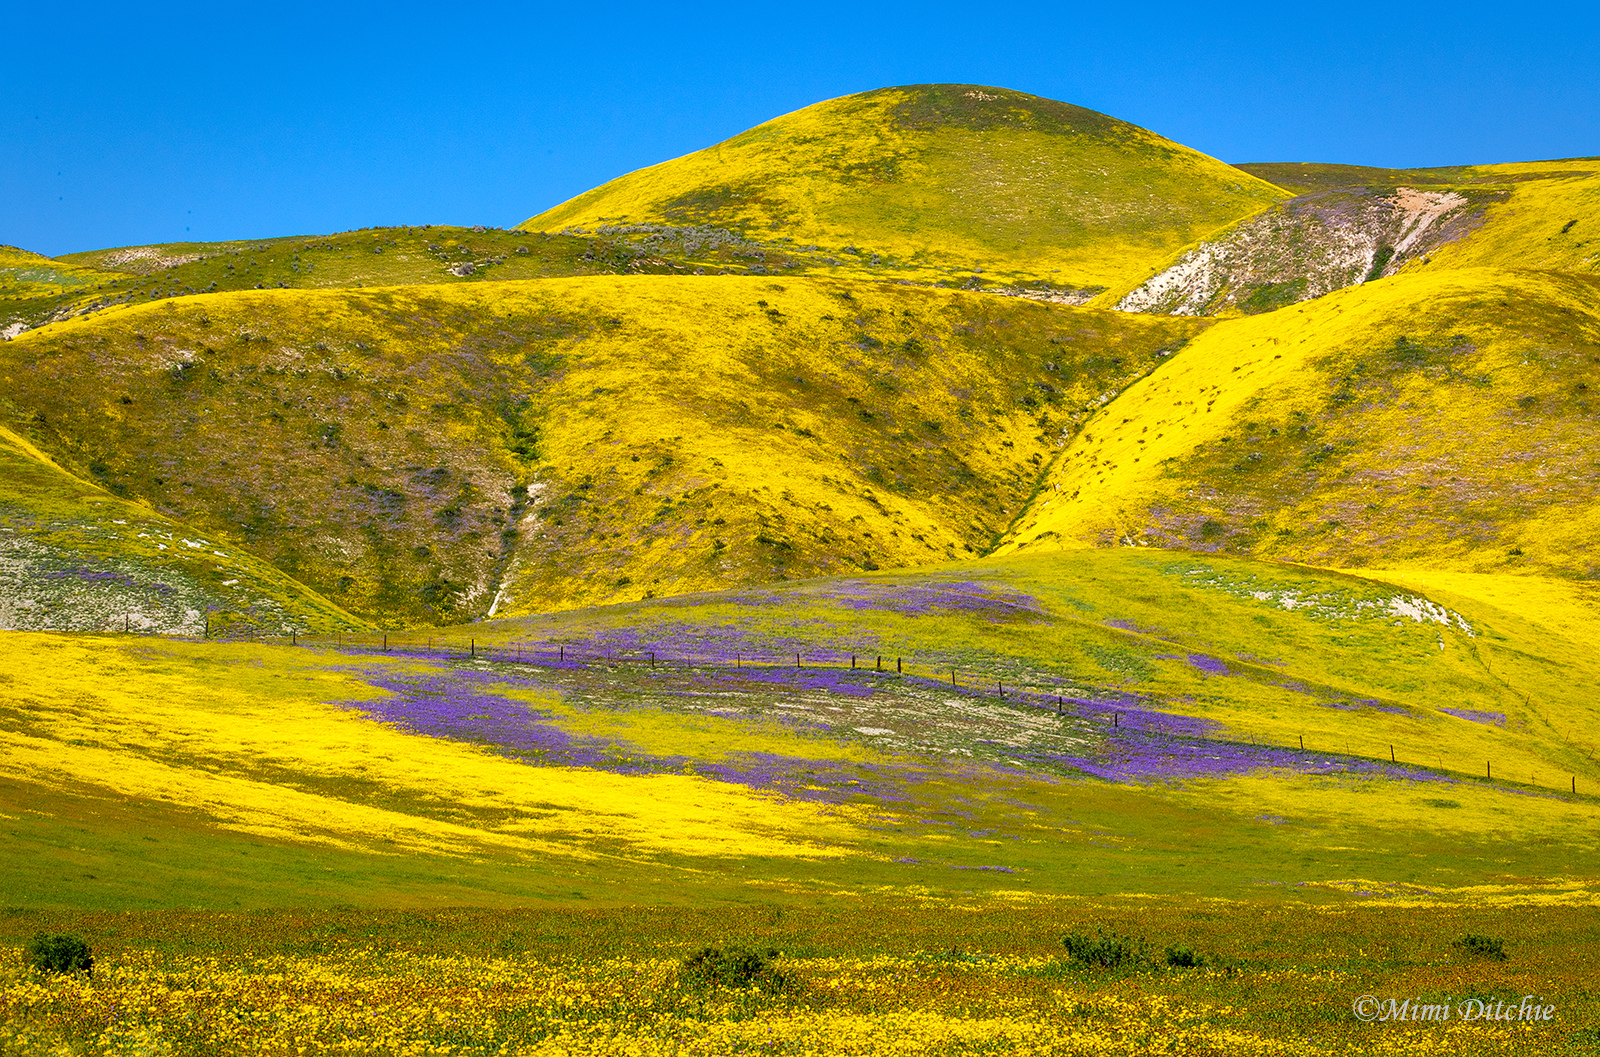 California Super Bloom is worth a visit